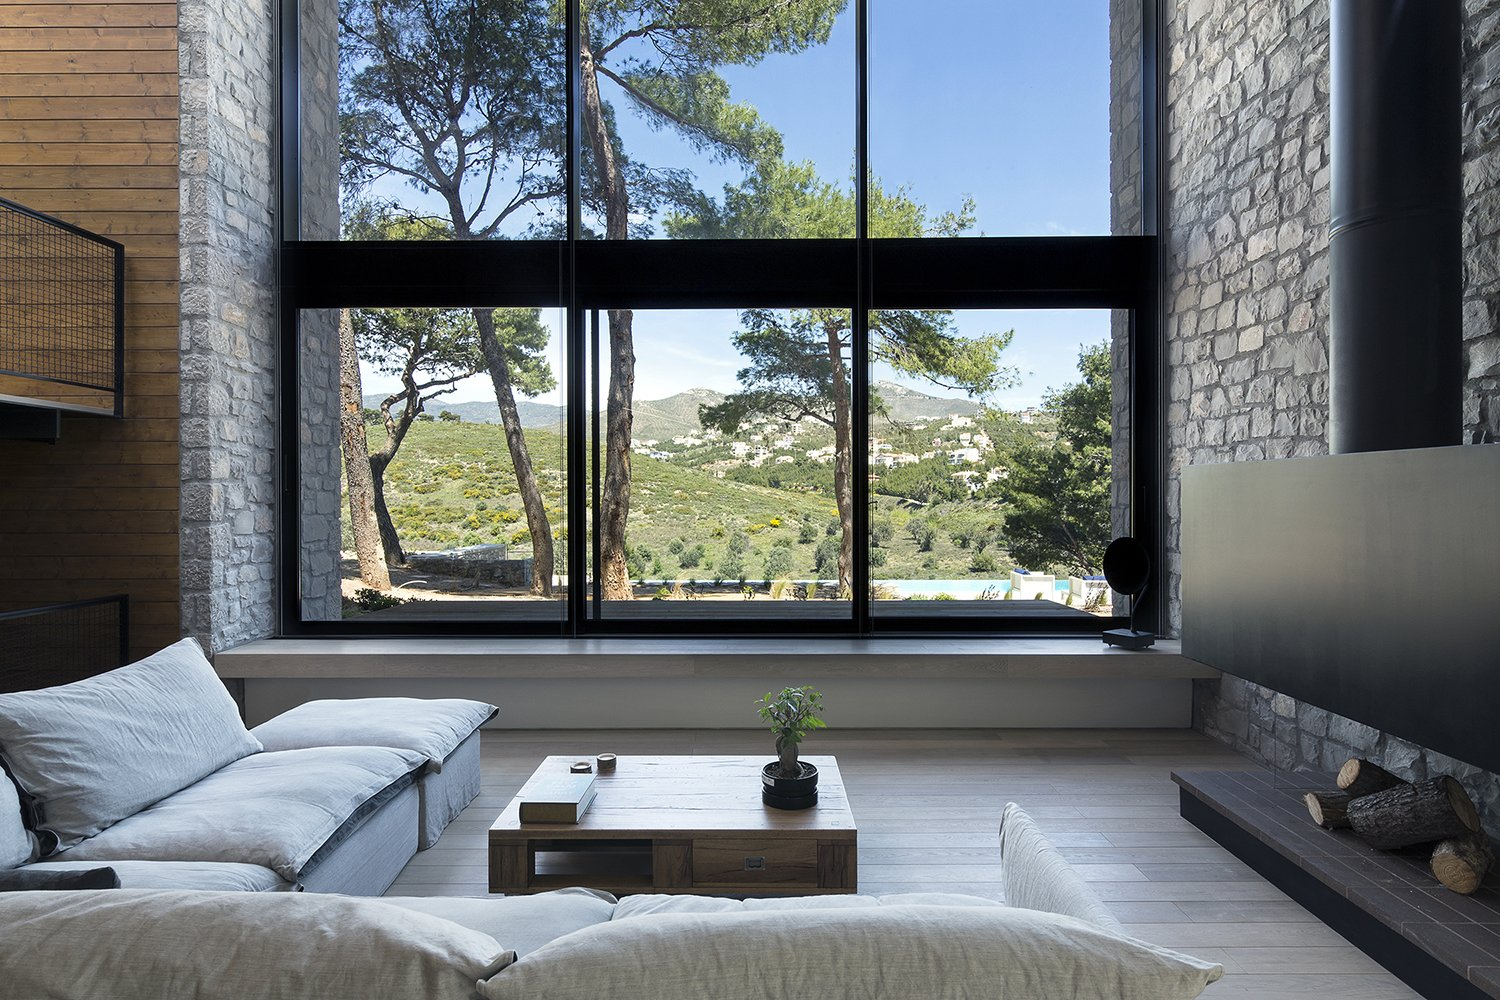 The facade opens up to the view of the pines trees concealing the boundary between the interior of the house and its surrounding environment  Tagged: Living Room.  The Wedge House by Marianna Athanasiadou